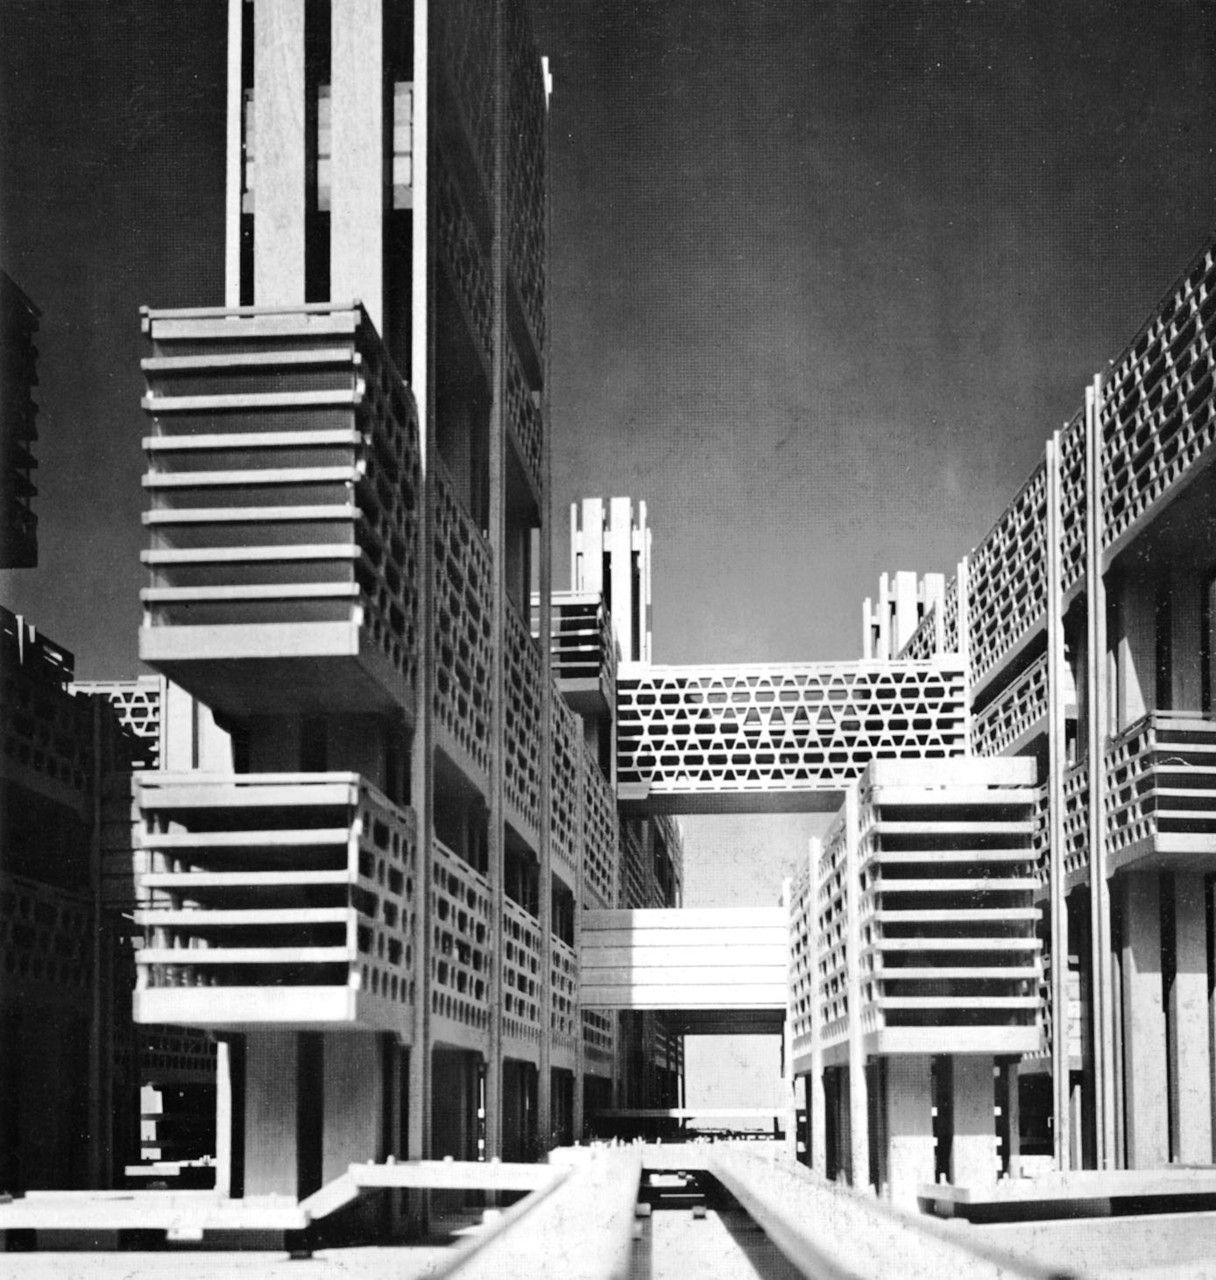 Kenzo tange architecture for the world pdf